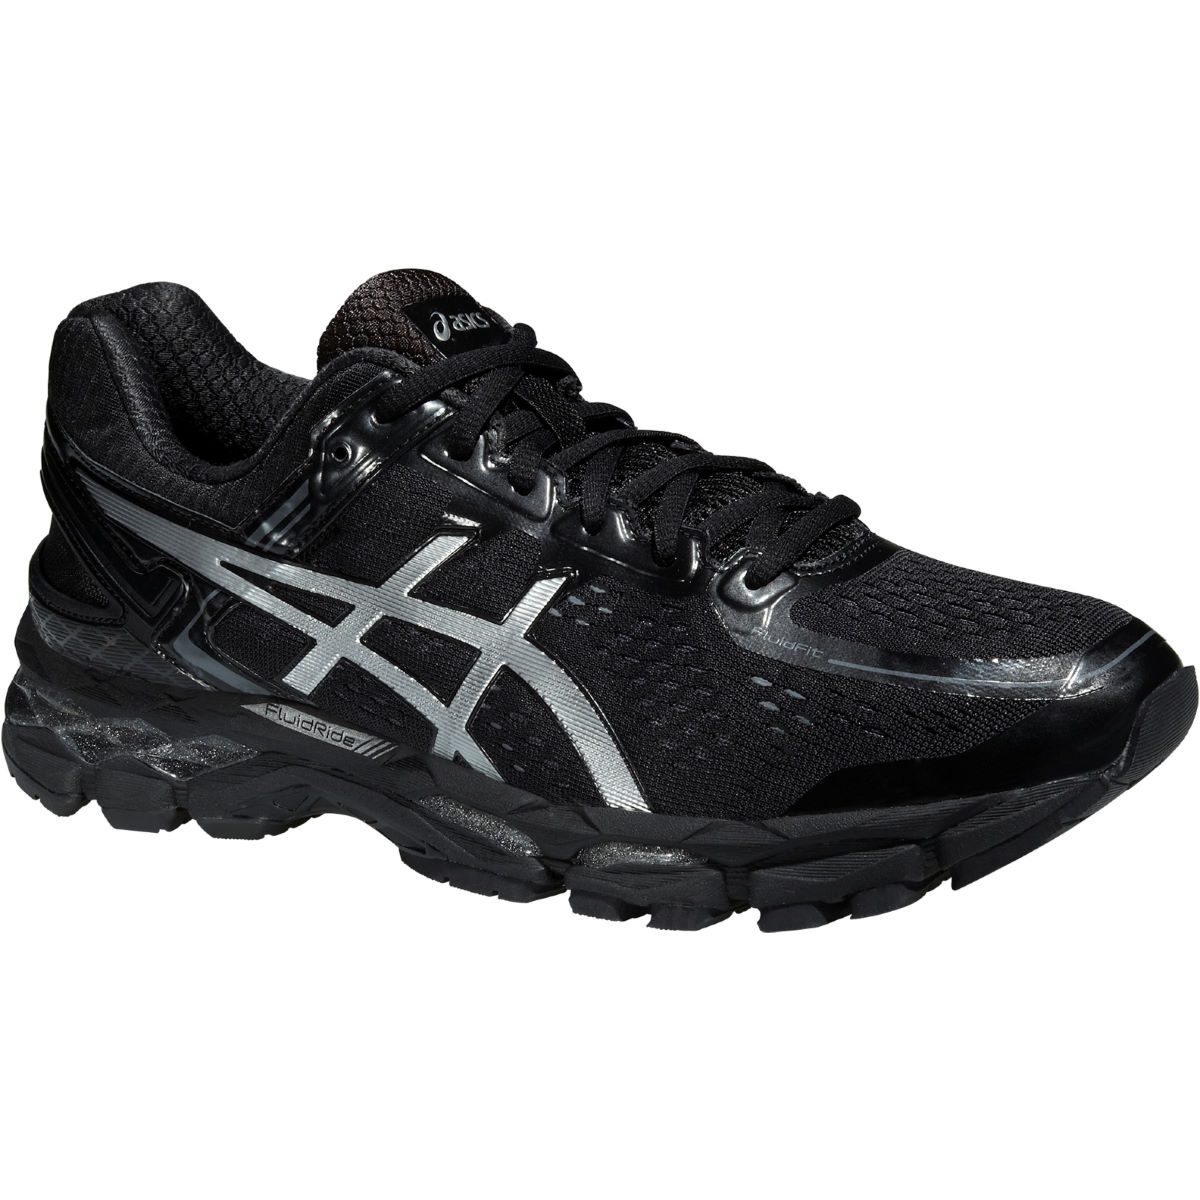 Chaussures Asics Gel-Kayano 22 (noires) - 10 UK Onyx/Silver/Charcoal Chaussures de running stables